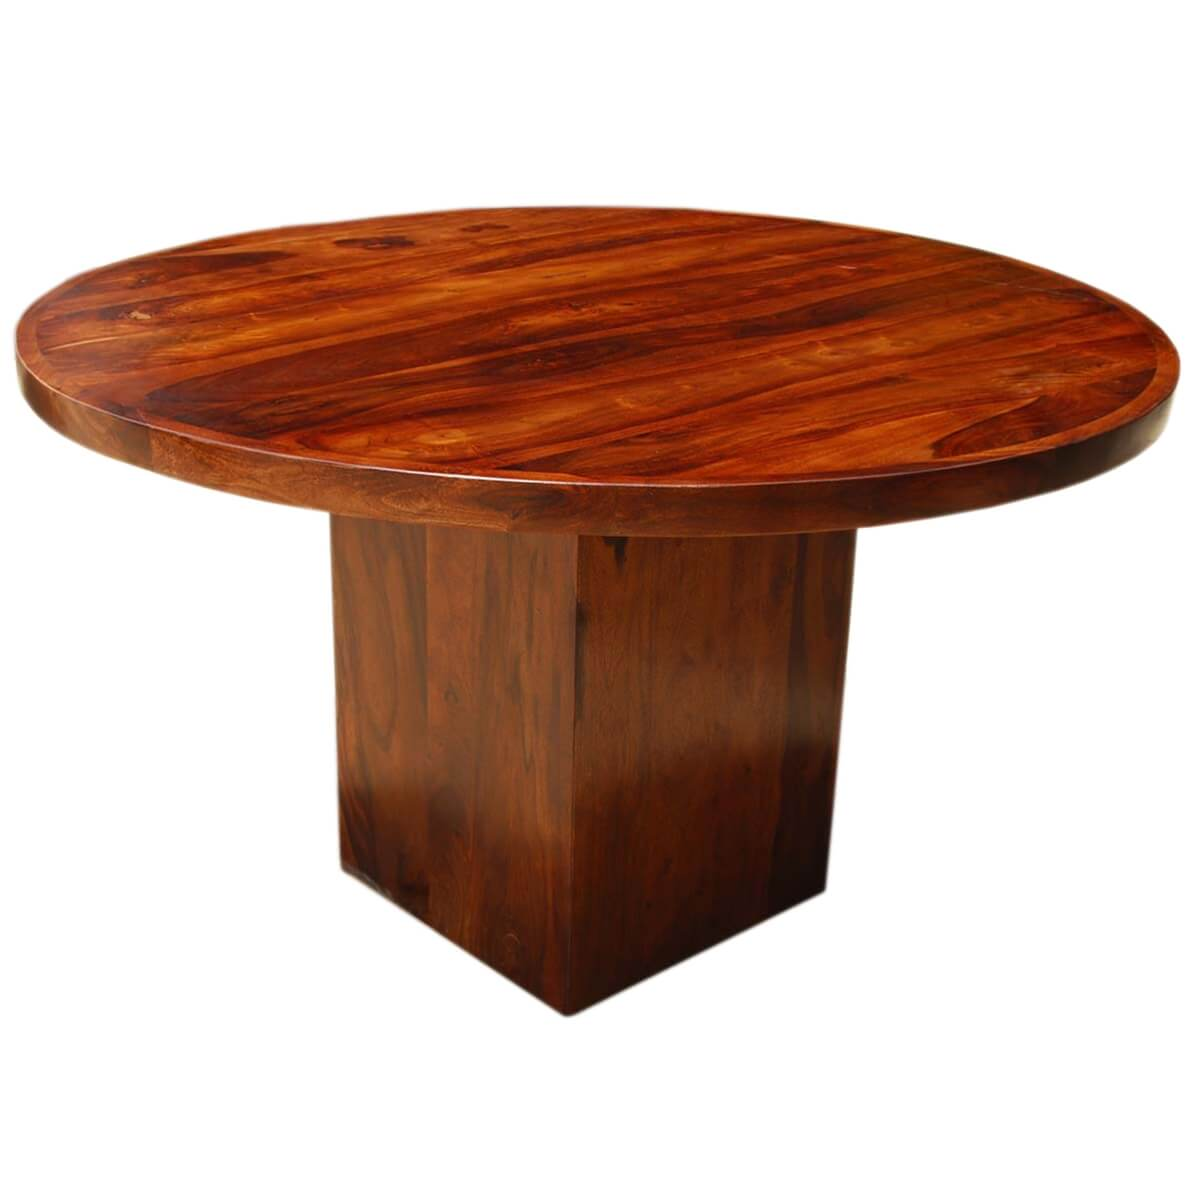 Square Pedestal Kitchen Table Solid Wood Rustic Round Dining Table W Square Pedestal